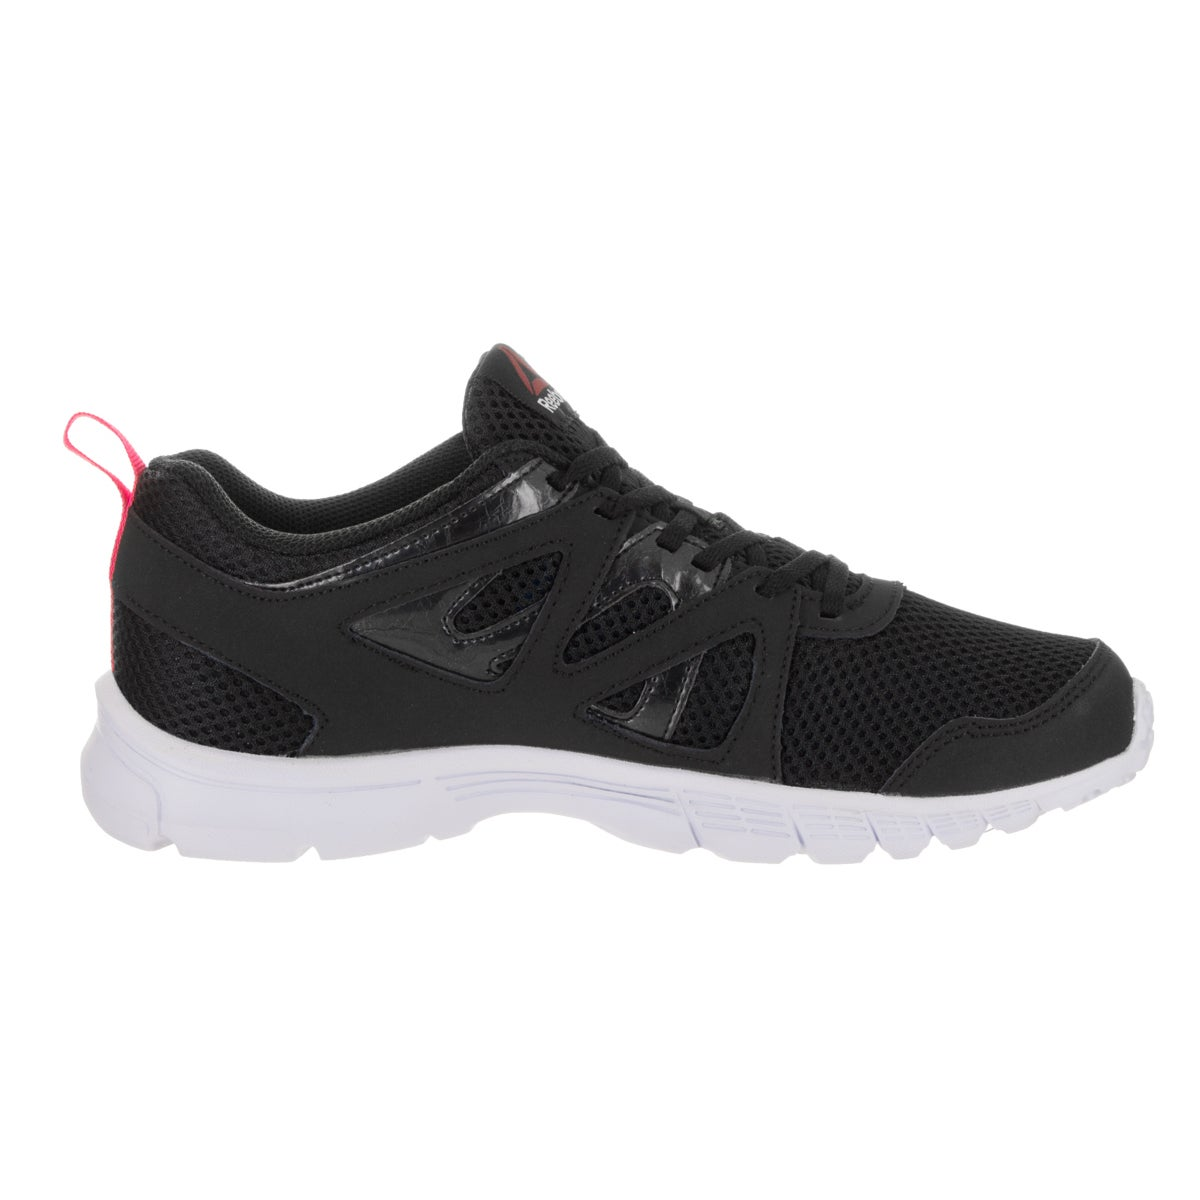 Shop Reebok Women s Run Supreme 2.0 Wide Running Shoe - Free Shipping Today  - Overstock.com - 16120916 304501dc1